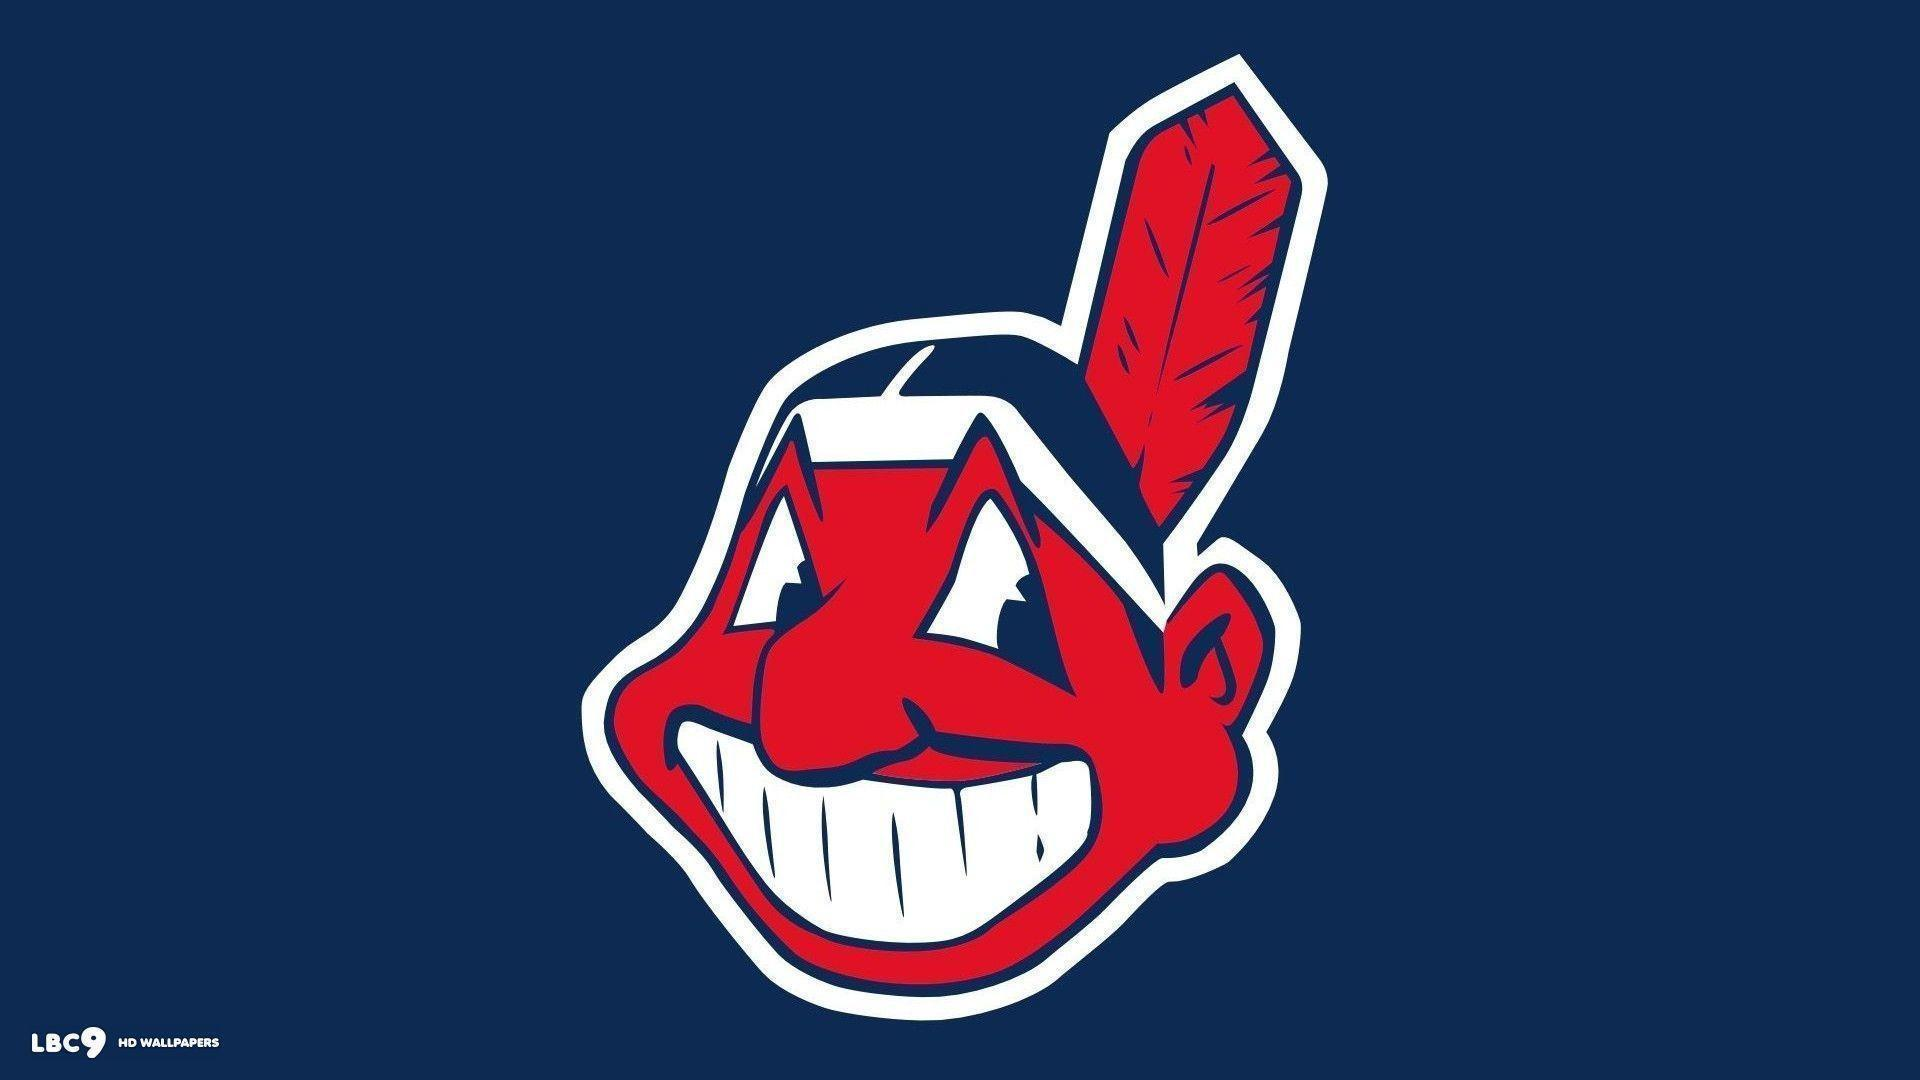 cleveland indians wallpapers 1/3